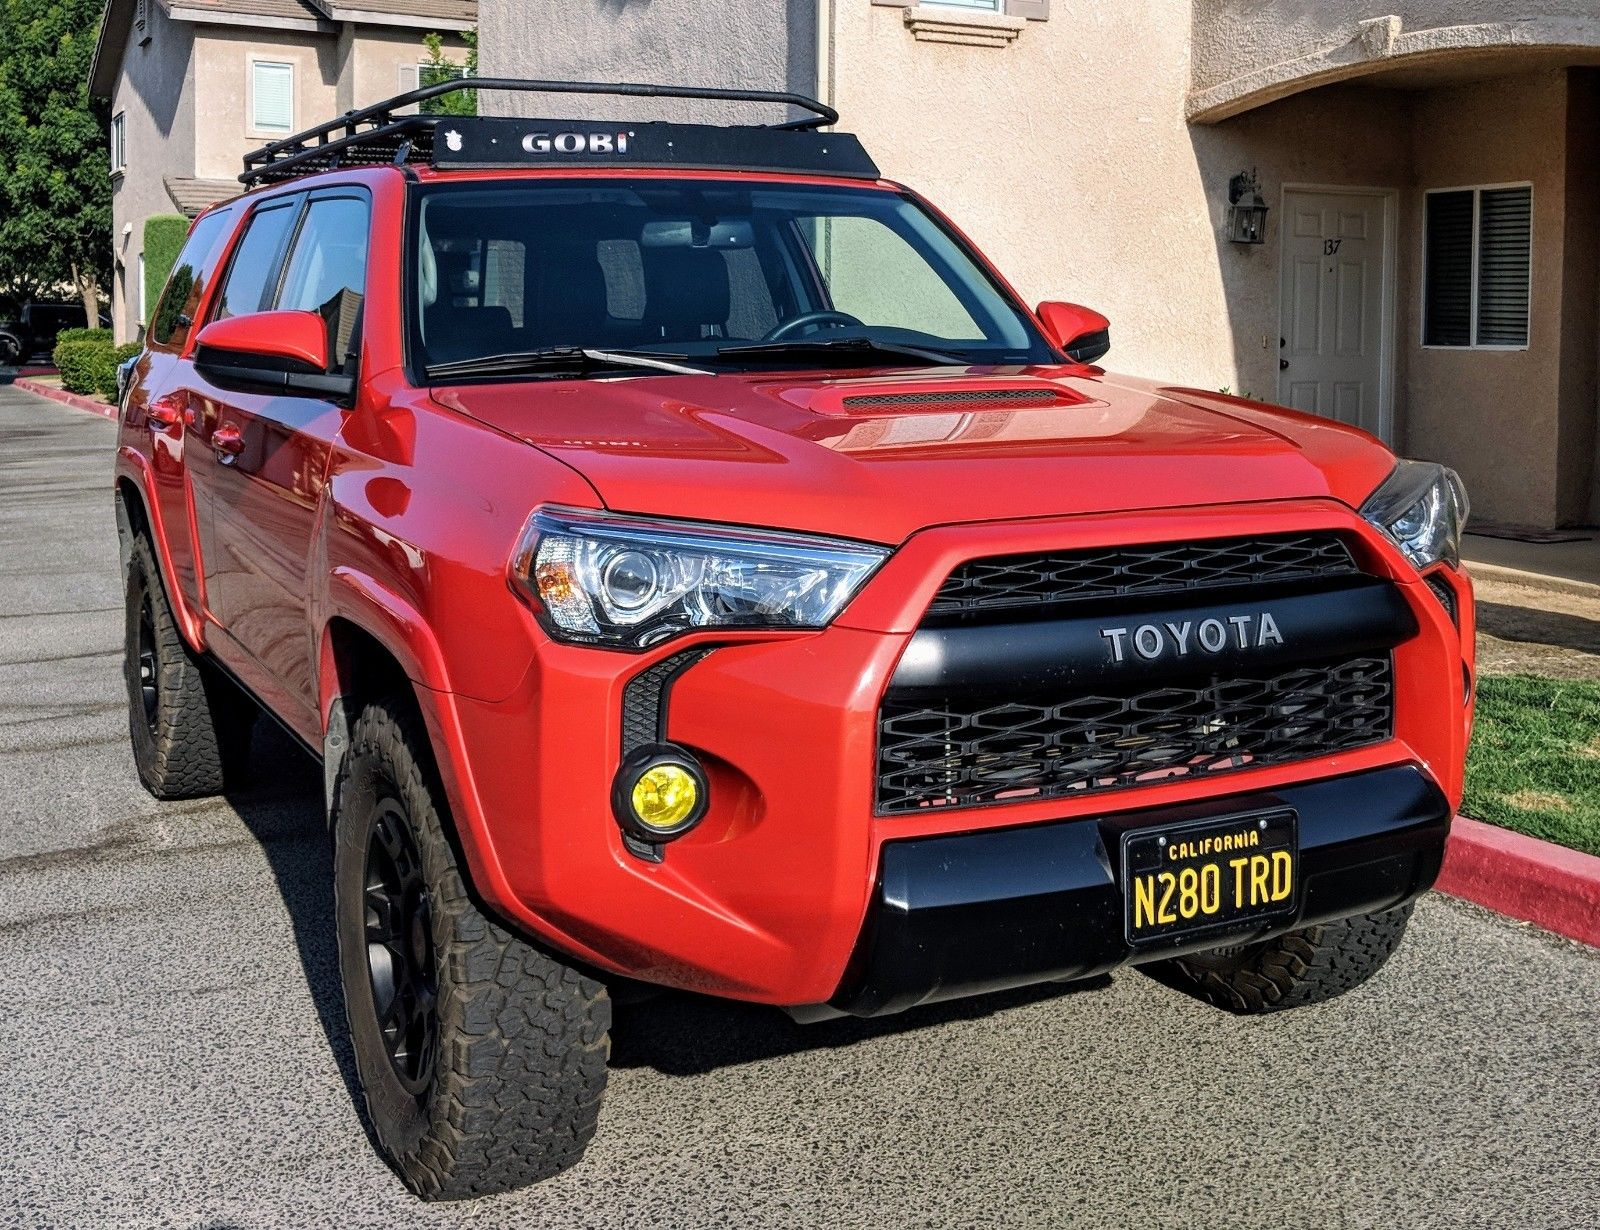 Used 2015 Toyota 4runner Trd Pro Trd Pro Toyota 4runner 2015 Inferno Orange 2018 2019 Is In Stock And For Sale Mycarboard Com